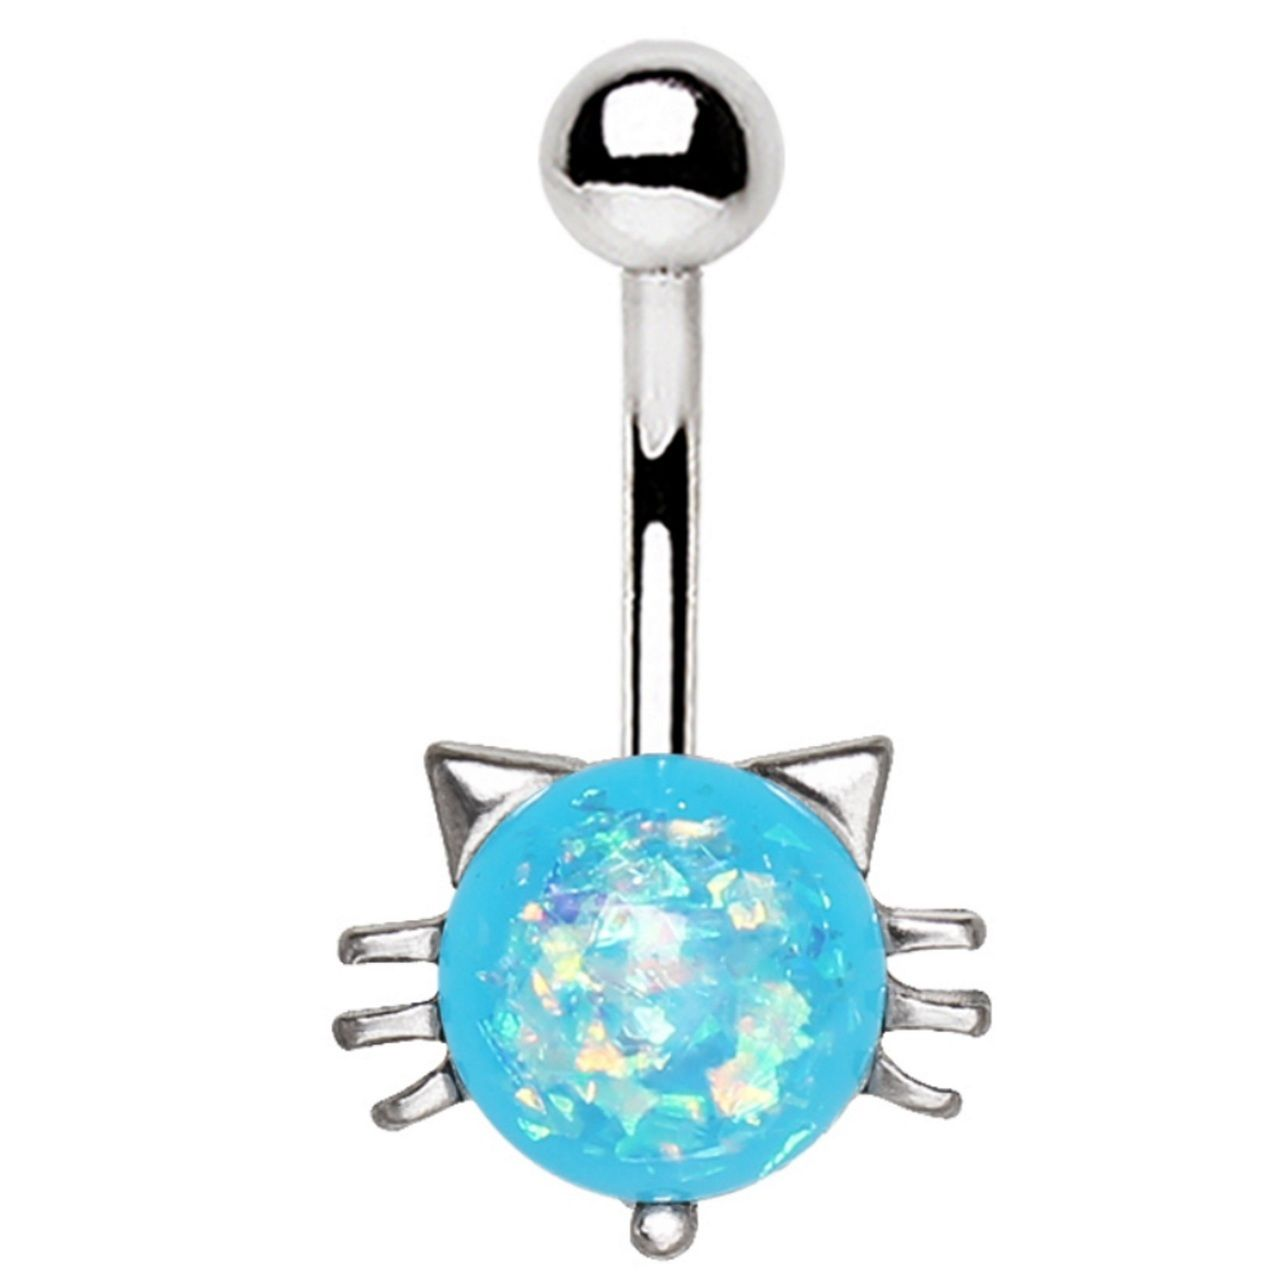 Blue Simulated Opal Heart Shape Prong Belly Button Ring Navel Body Piercing Jewelry